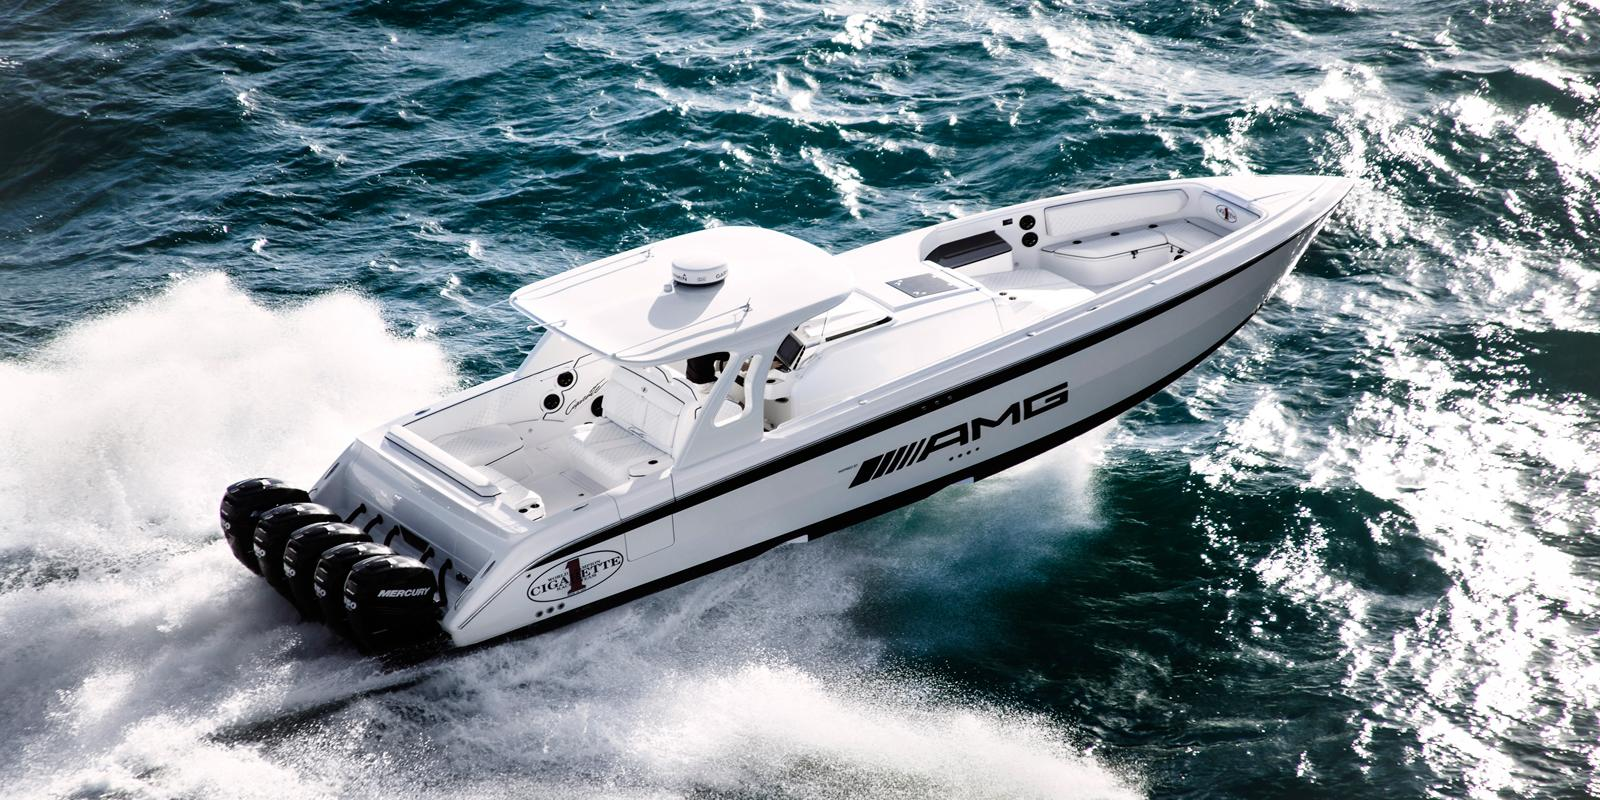 Amg 42 Huntress Cigarette Boat Inspired By G63 Amg